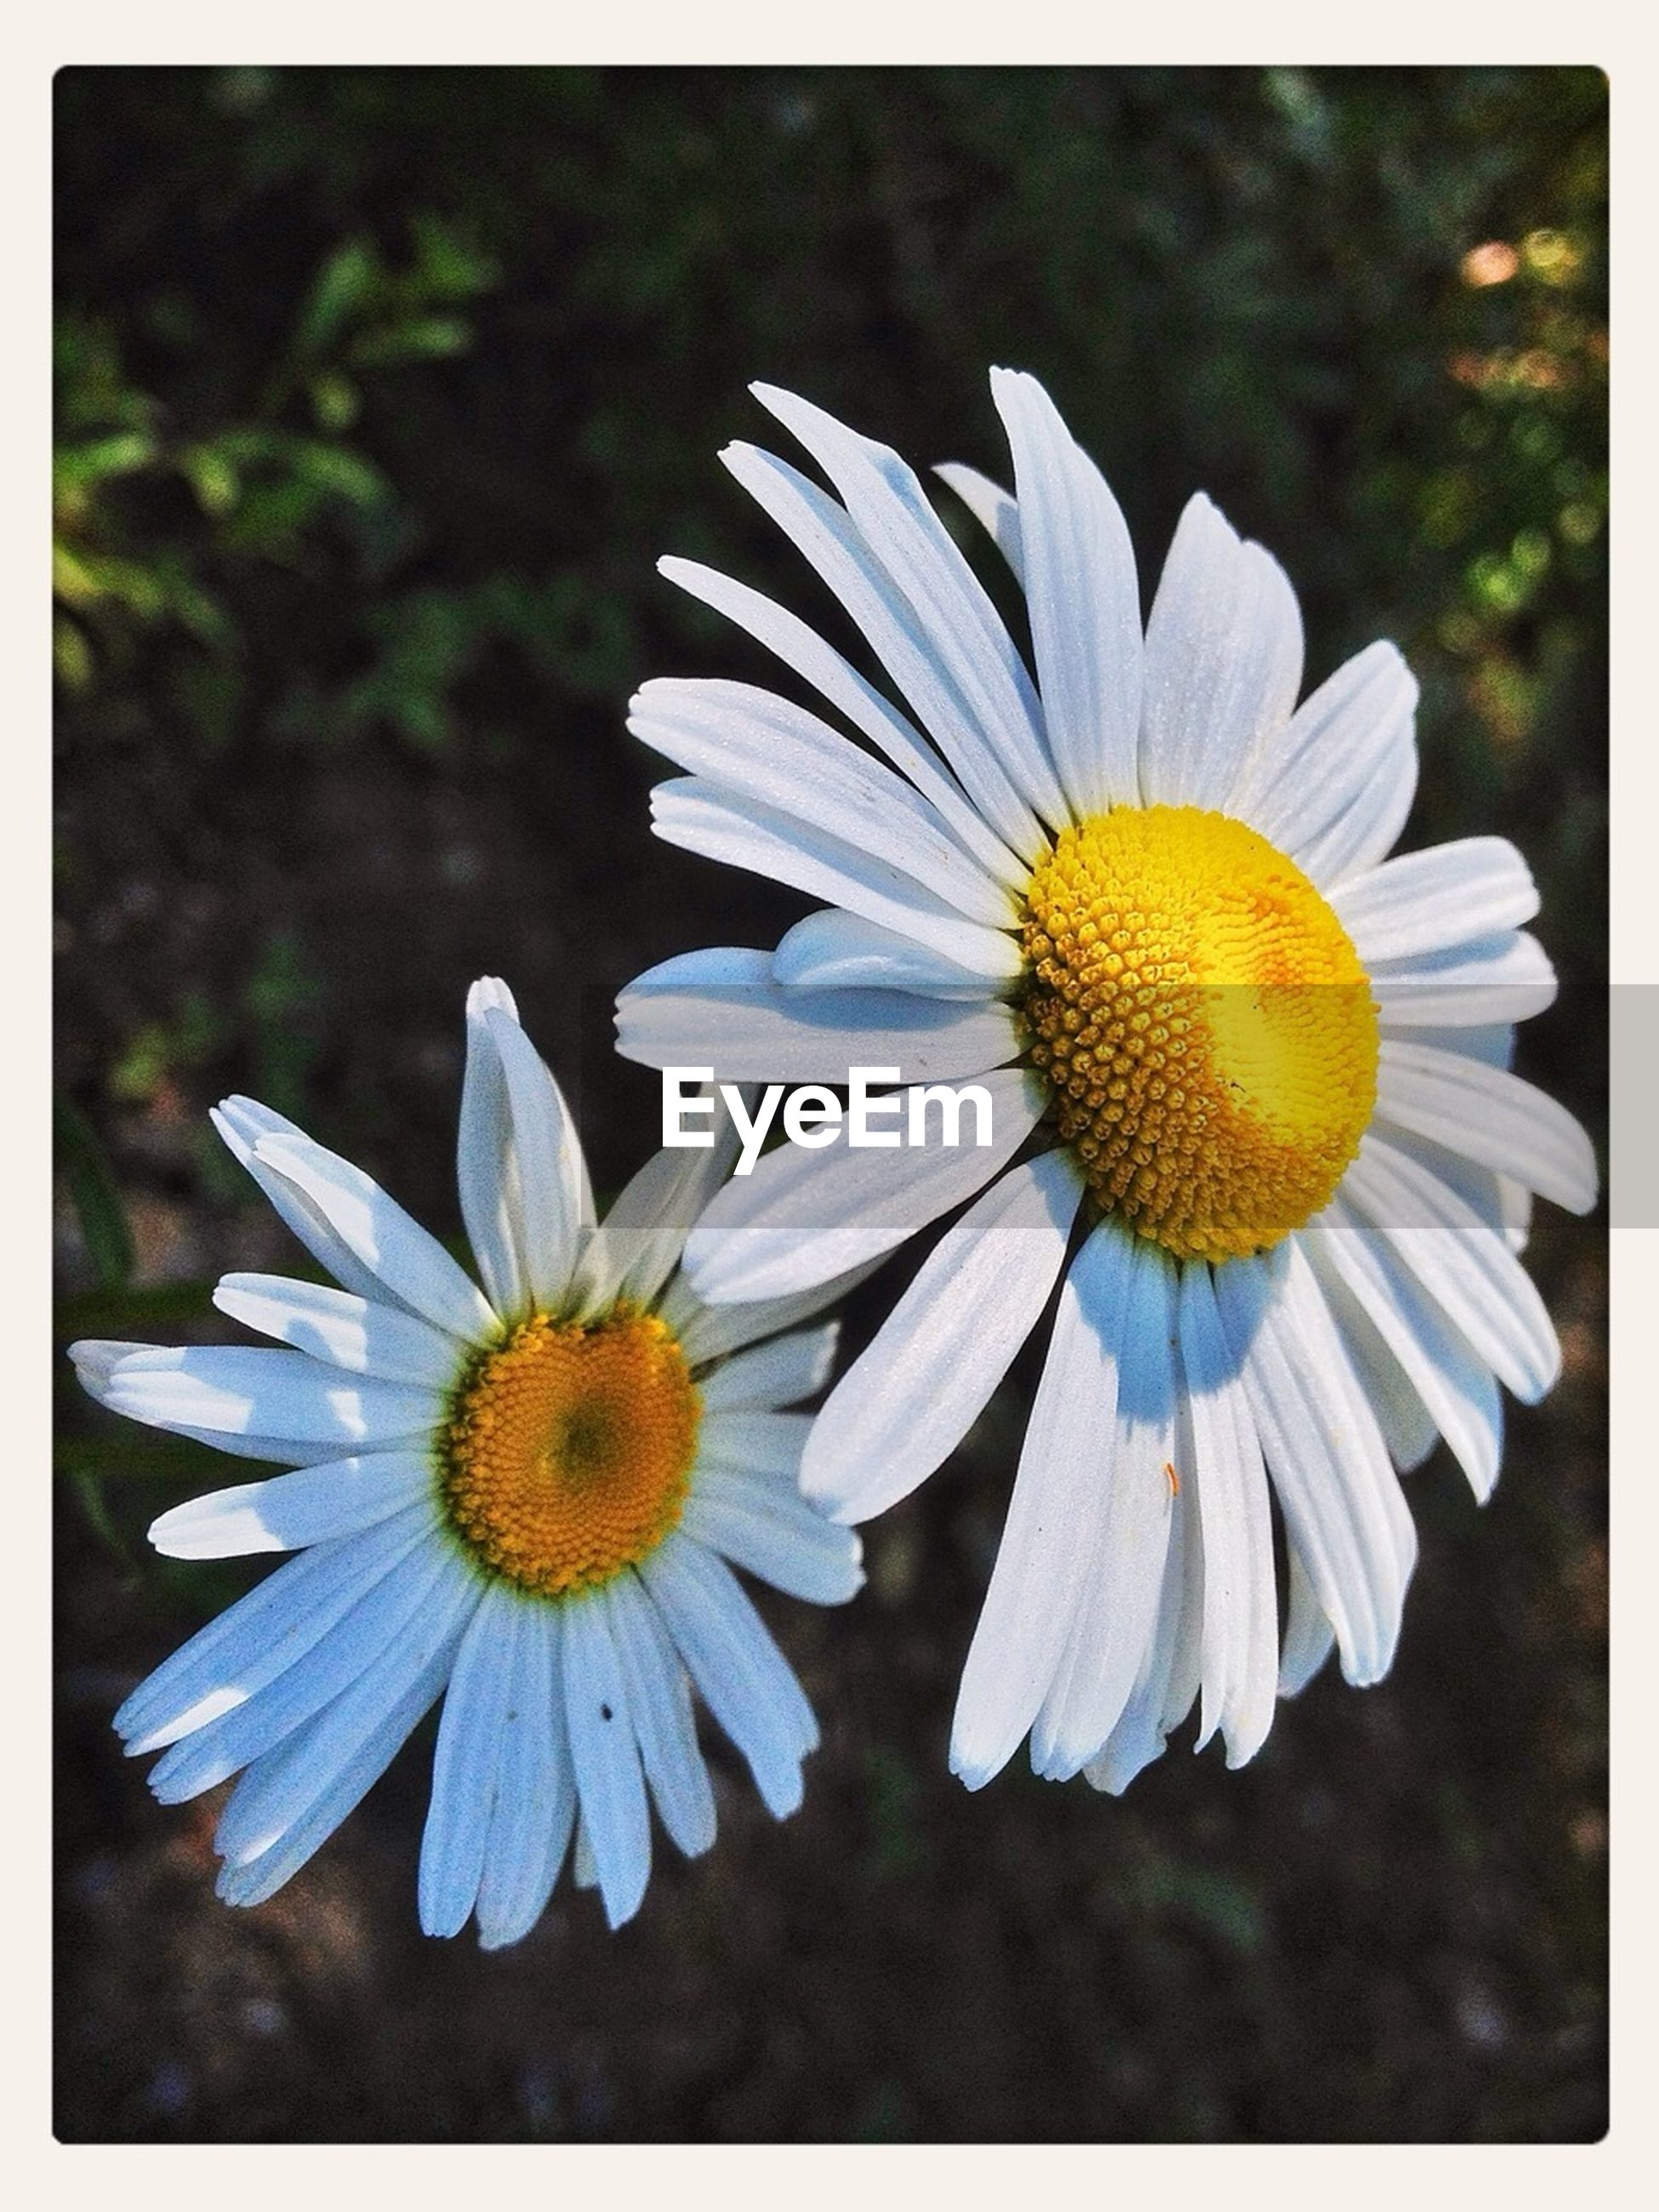 flower, petal, freshness, flower head, fragility, transfer print, daisy, pollen, white color, beauty in nature, auto post production filter, growth, blooming, nature, yellow, close-up, plant, high angle view, single flower, focus on foreground